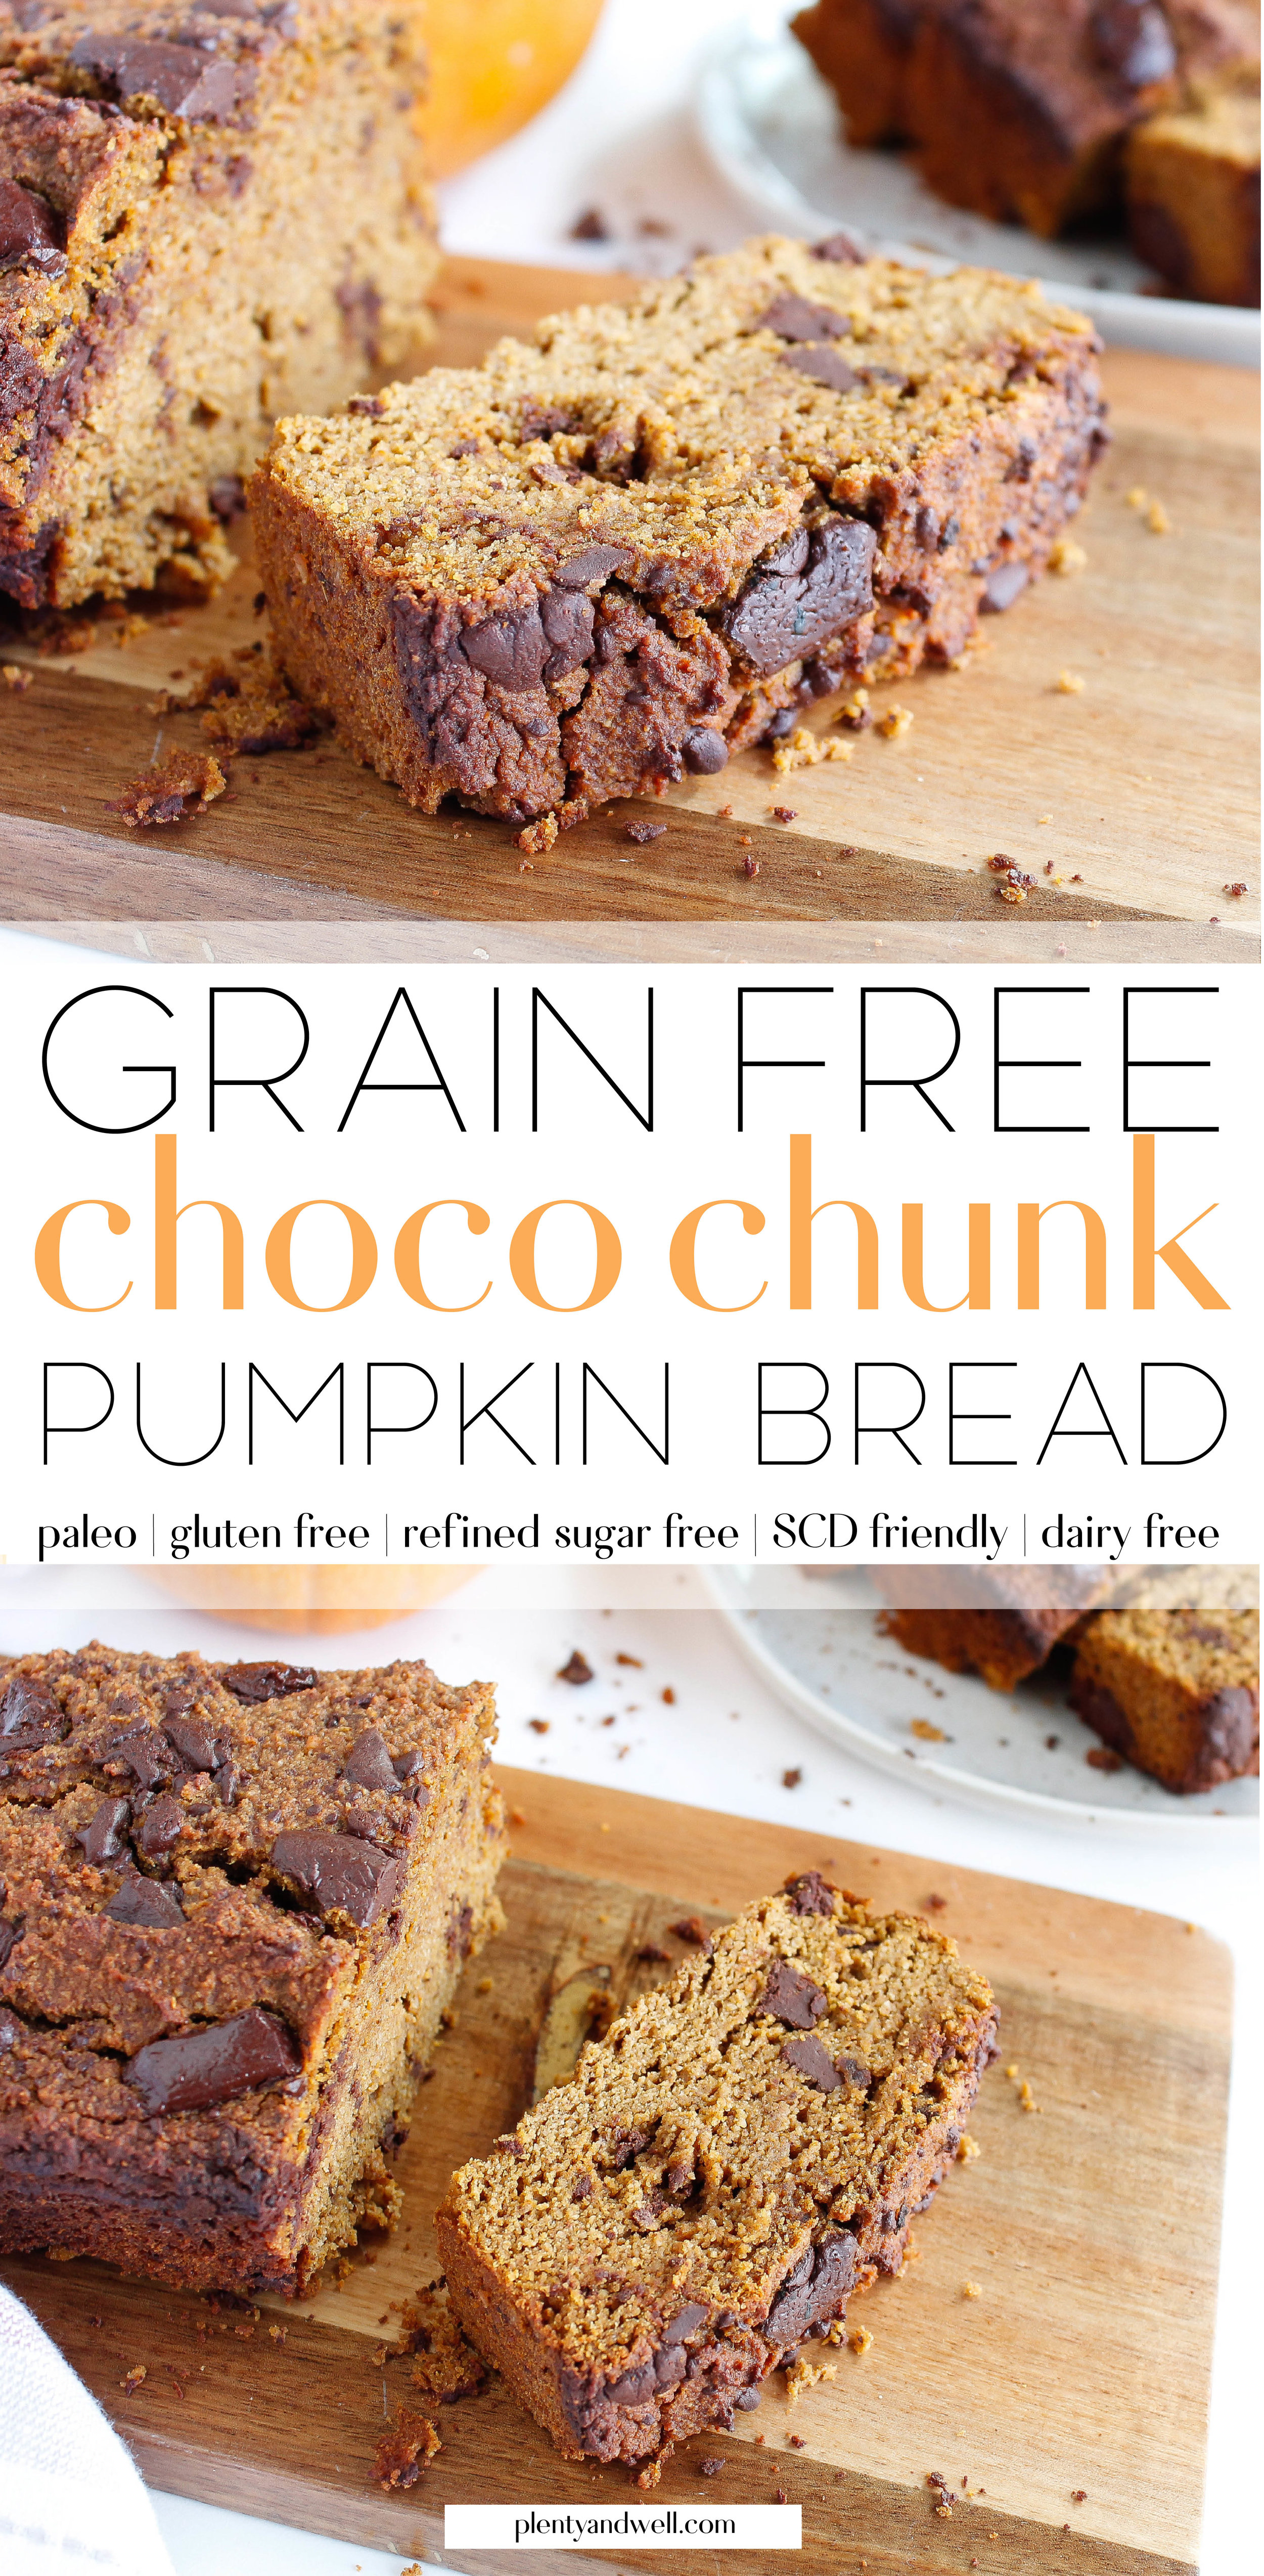 This paleo chocolate chip pumpkin bread is the perfect fall recipe! It makes for a great healthy snack, healthy breakfast or even healthy dessert! It's grain free, gluten free, dairy free AND refined sugar free, also making it a great allergy friendly recipe. Click through the try the recipe for yourself!